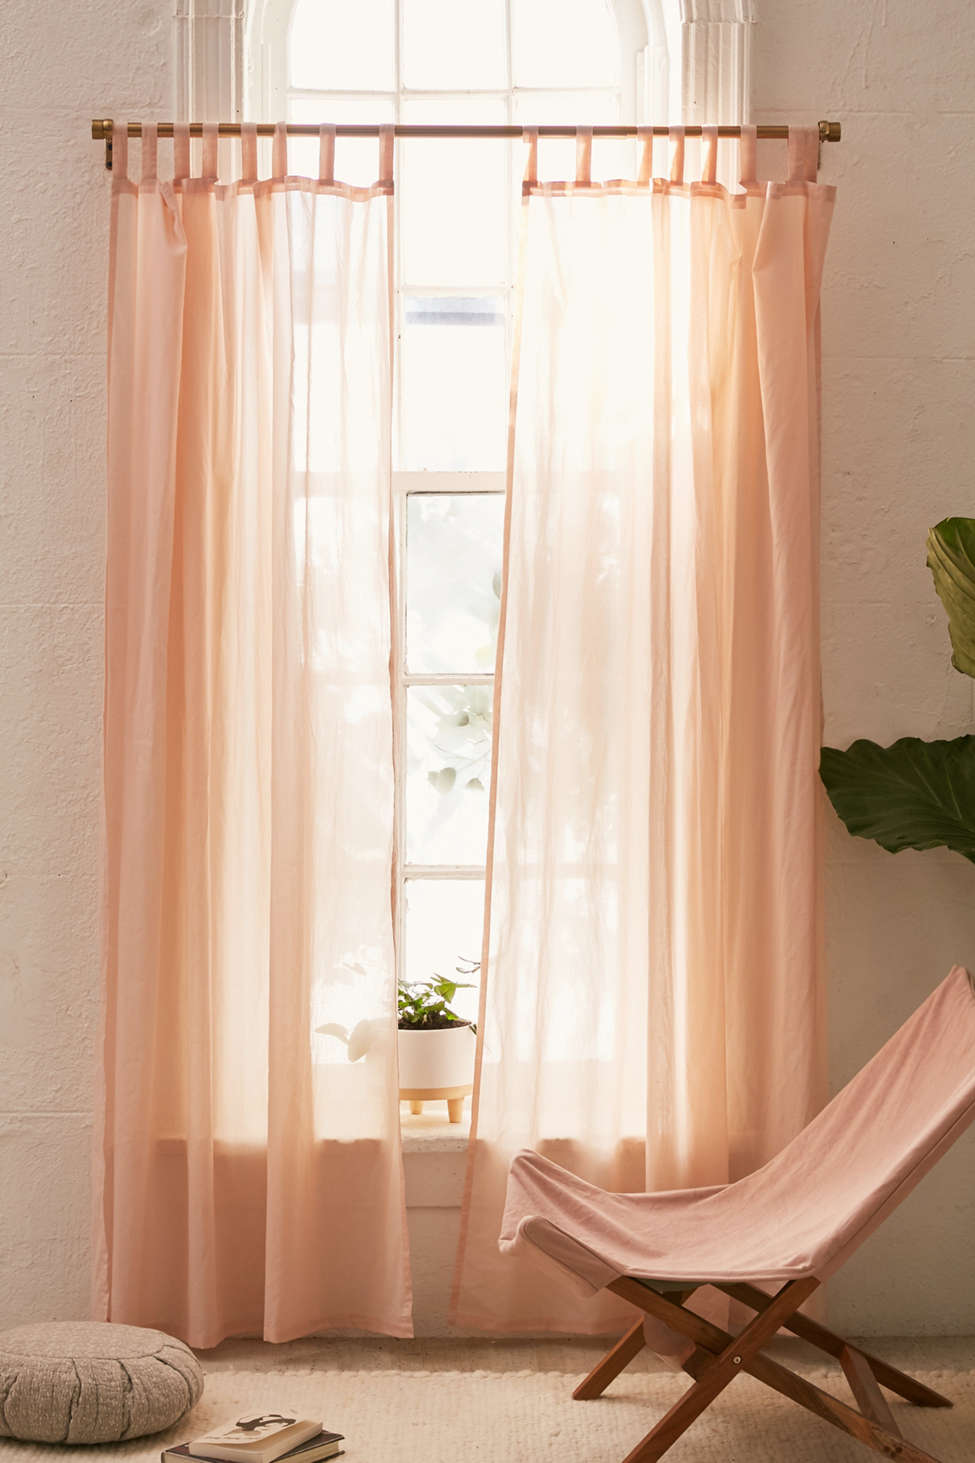 Slide View: 1: Sheer Voile Window Curtain